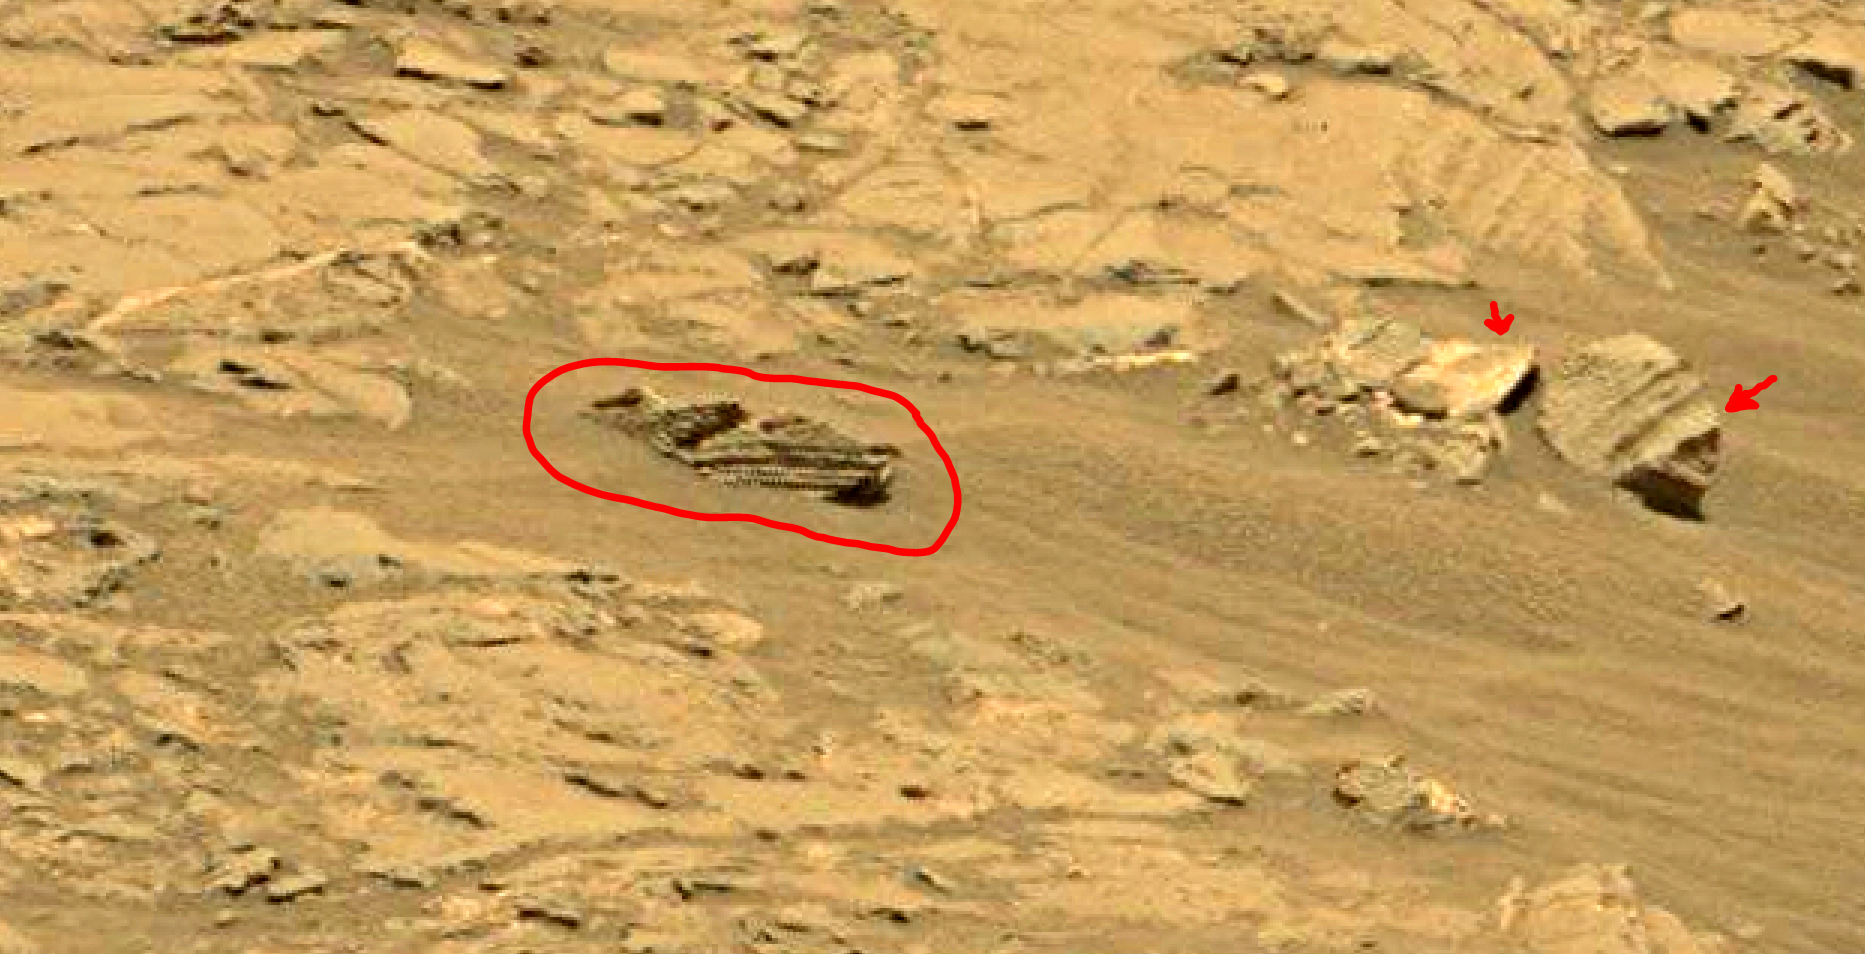 mars sol 1353 anomaly-artifacts 43a was life on mars